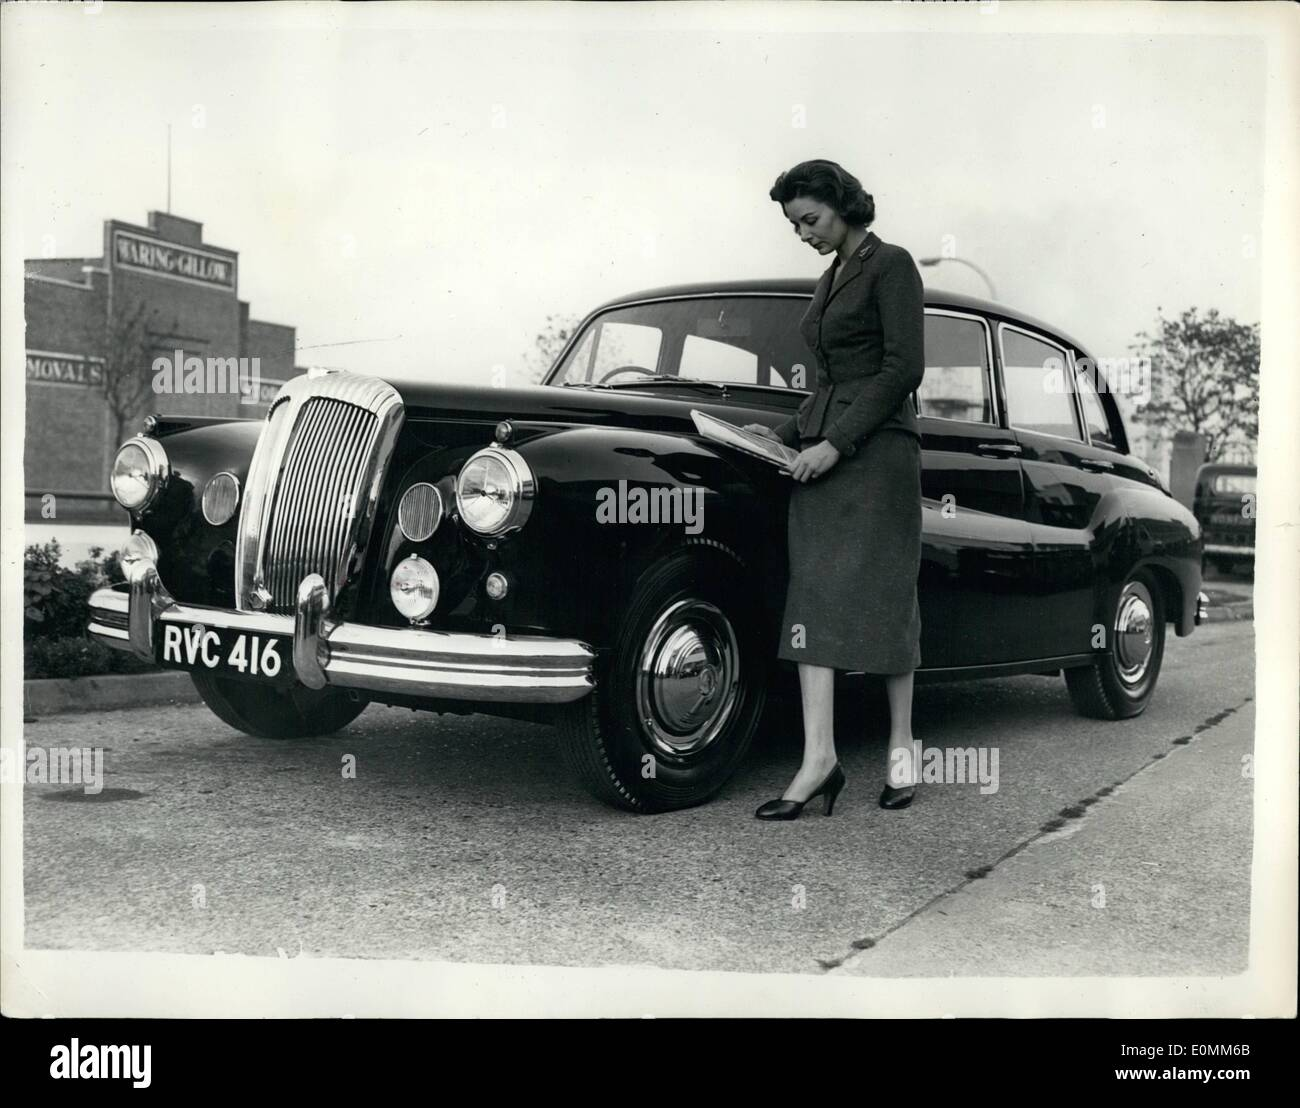 Oct. 10, 1955 - The New Daimler One-O-Four Tops 100 M.P.H... Designed For The ladies. Keystone Photo Shows:- View of the new Daimler One-O-Four car which replaces the Regency Model - which is to be seen at the forthcoming Car Show. It has 137 brake horse power and tops 100 m.p.h.. It has been equipped for the lady motorist - having a vanity case in the central arm rest at the rear - has a telescopic umbrella housed forward at the nearside passenger door.. Price is £2,983 inclusive of purchase tax. - Stock Image